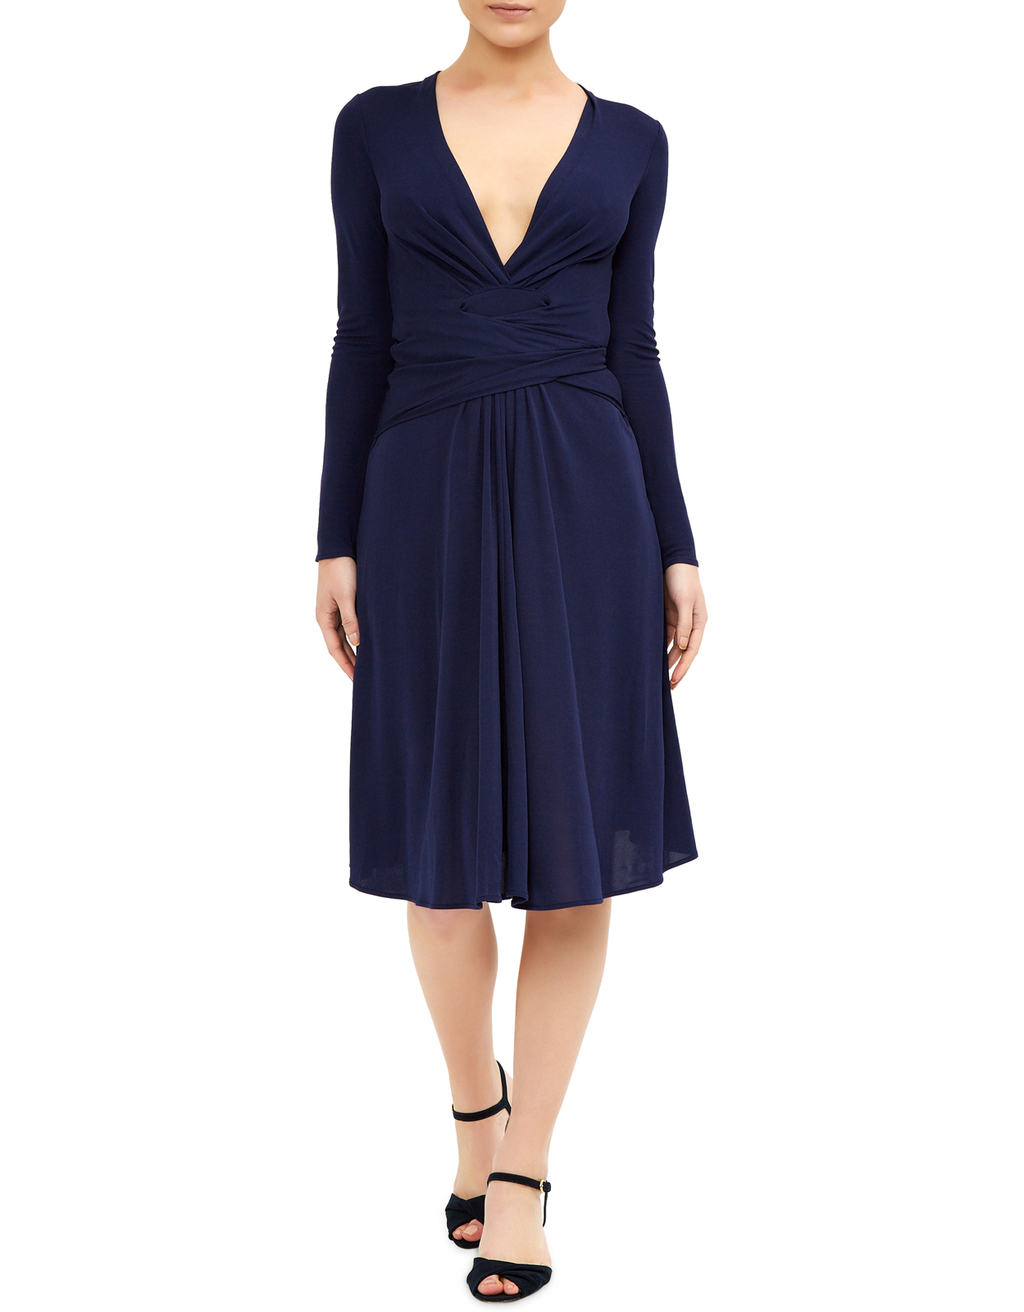 Gisele Dress - neckline: low v-neck; pattern: plain; waist detail: flattering waist detail; predominant colour: navy; occasions: evening, occasion; length: on the knee; fit: fitted at waist & bust; style: fit & flare; fibres: viscose/rayon - 100%; sleeve length: long sleeve; sleeve style: standard; pattern type: fabric; pattern size: standard; texture group: woven light midweight; season: s/s 2016; wardrobe: event